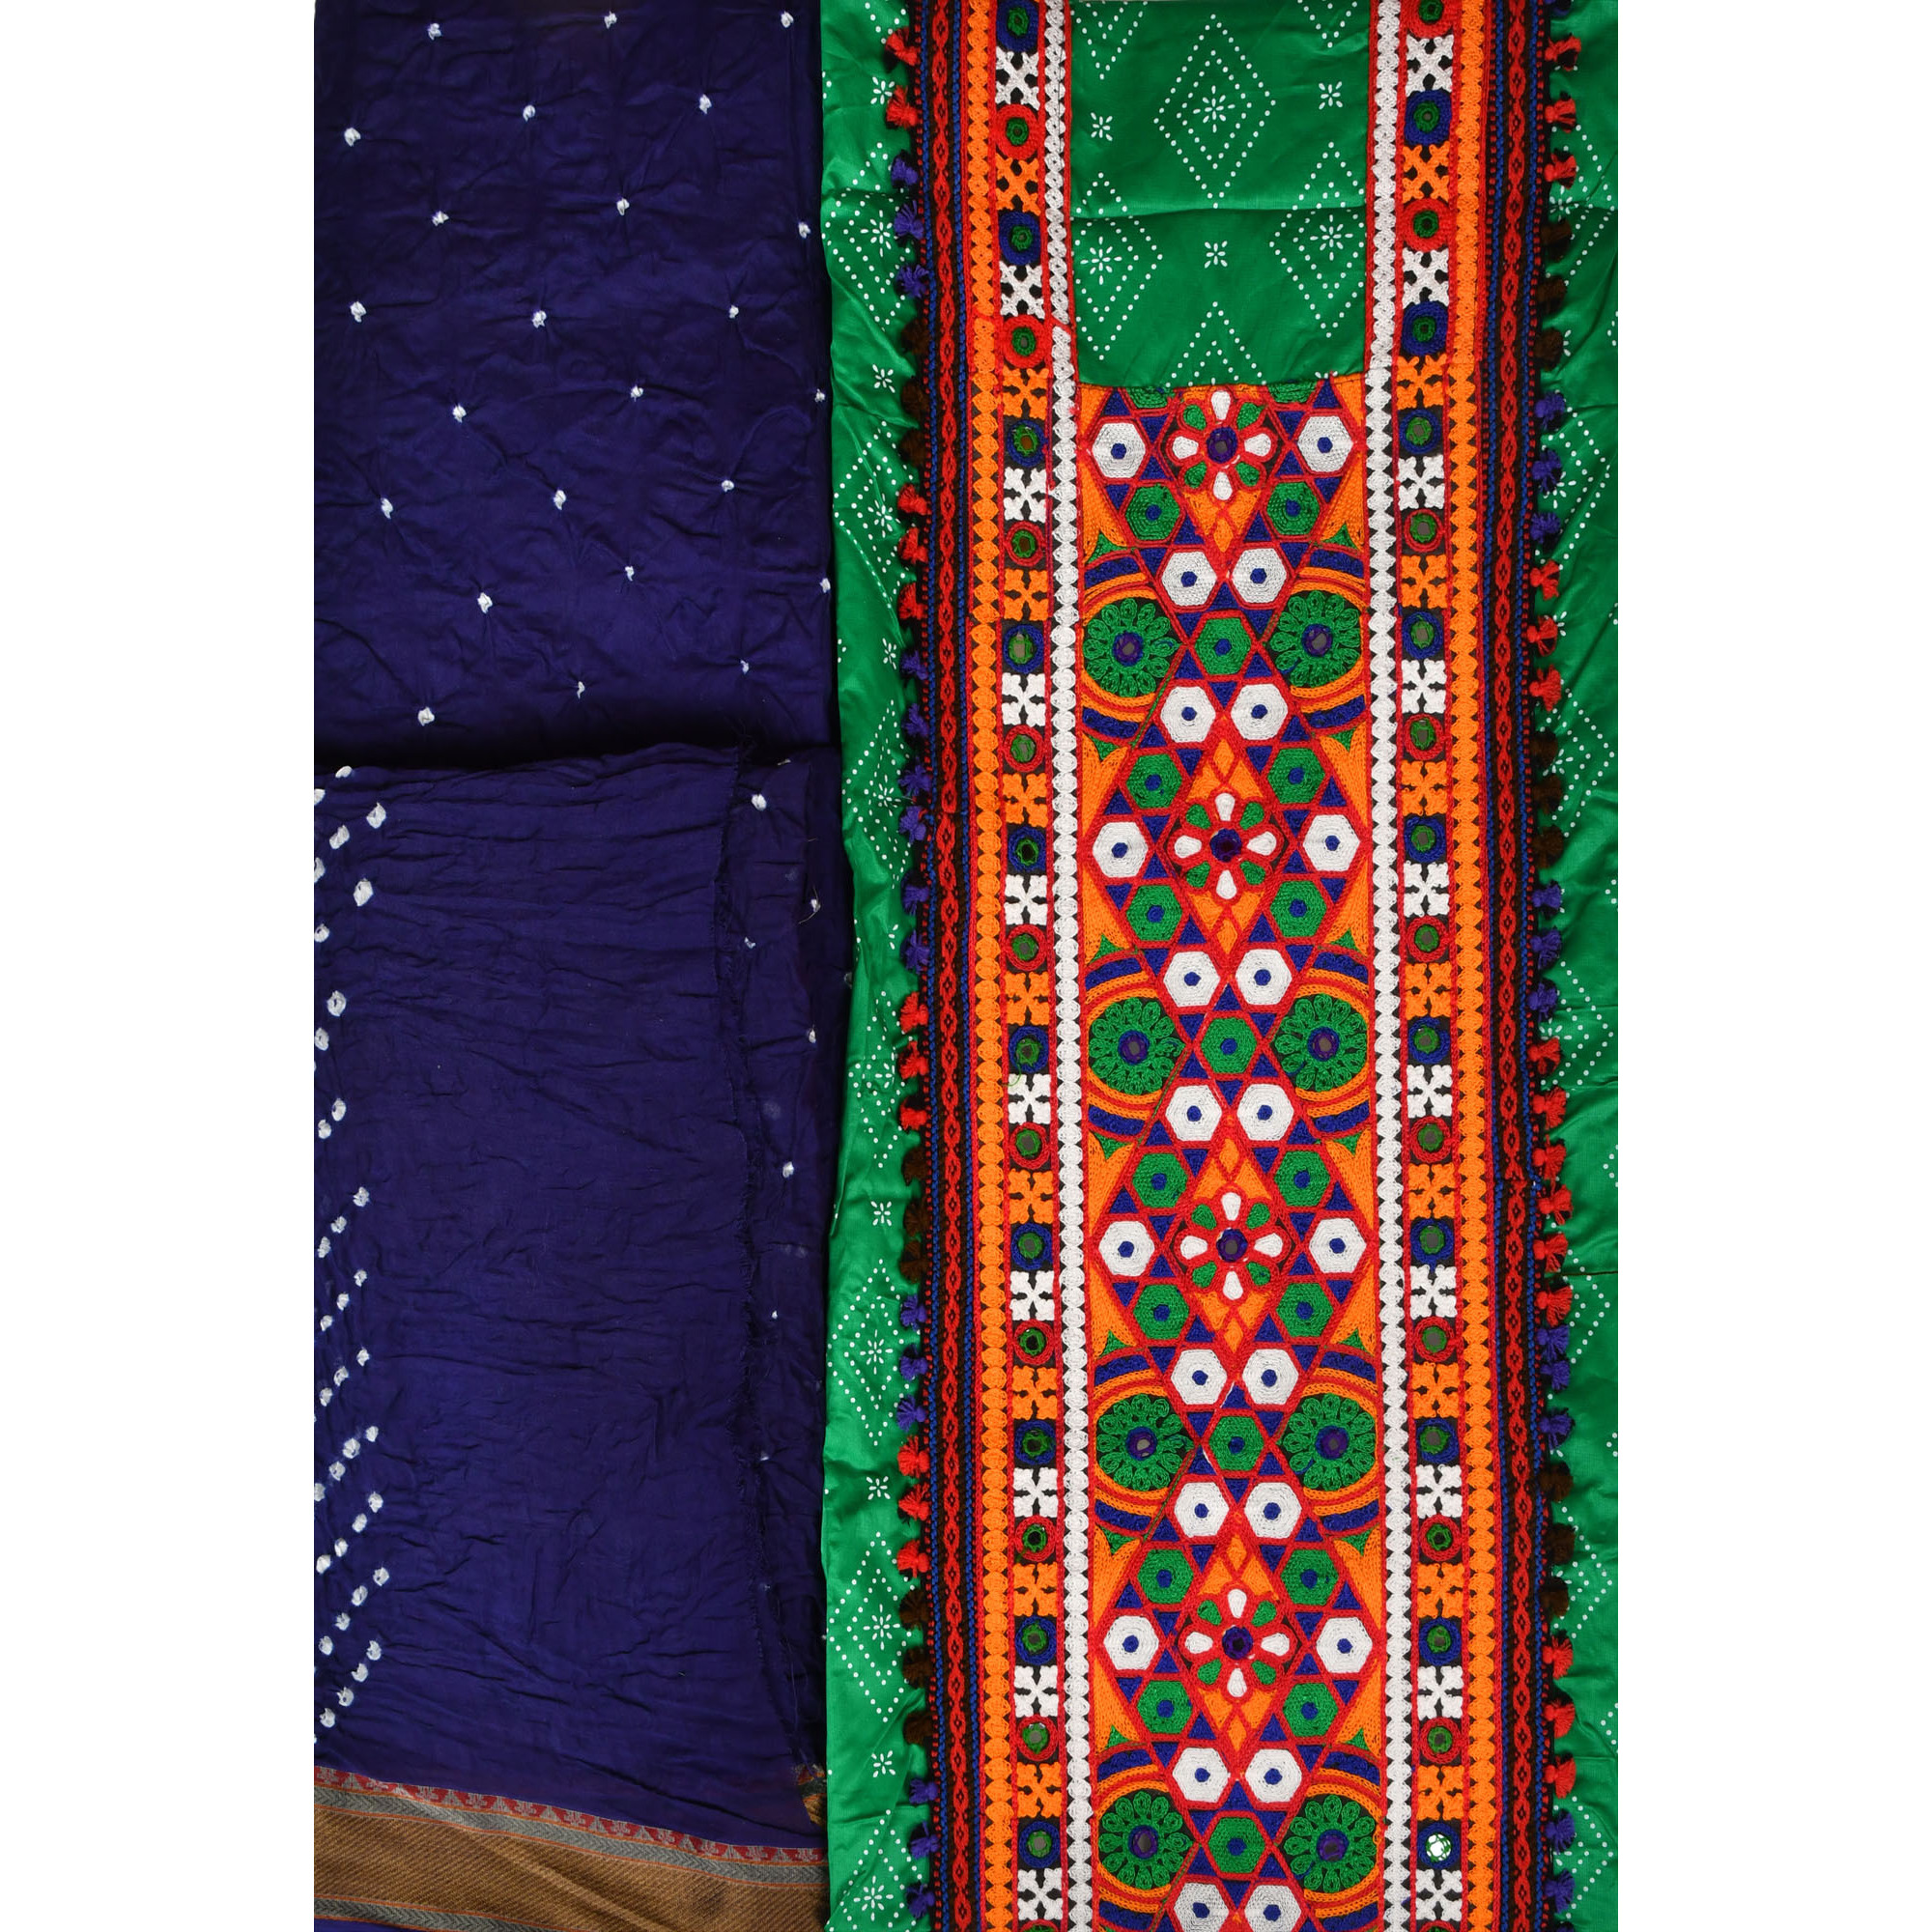 Salwar Kameez Fabric with Ari-Embroidery and Mirrors